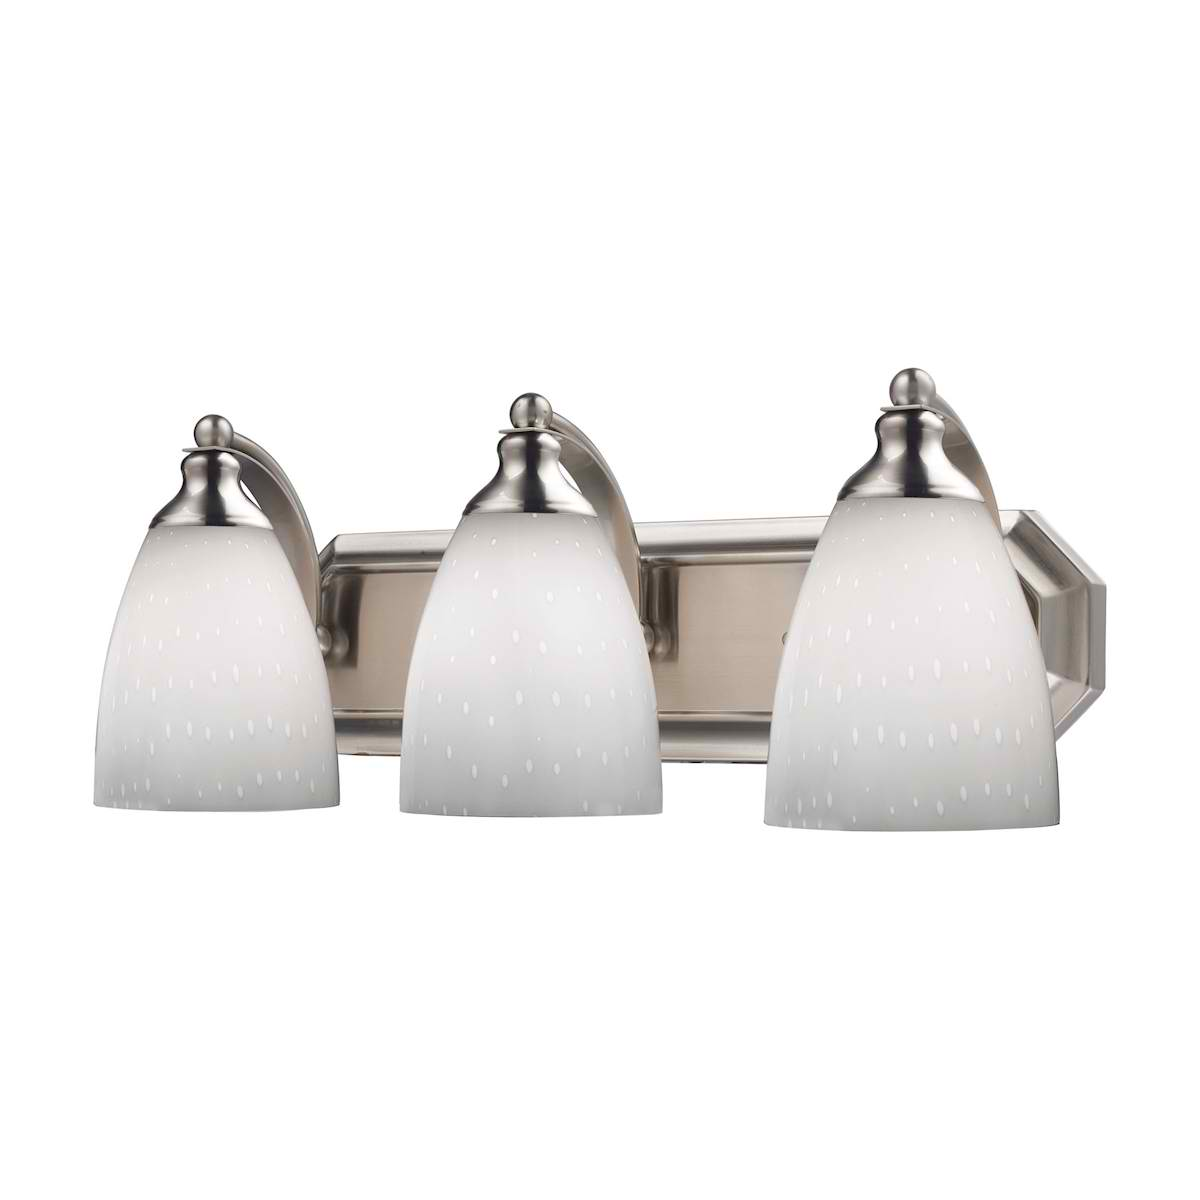 Vanity 3 Light in Satin Nickel with Simple White Glass